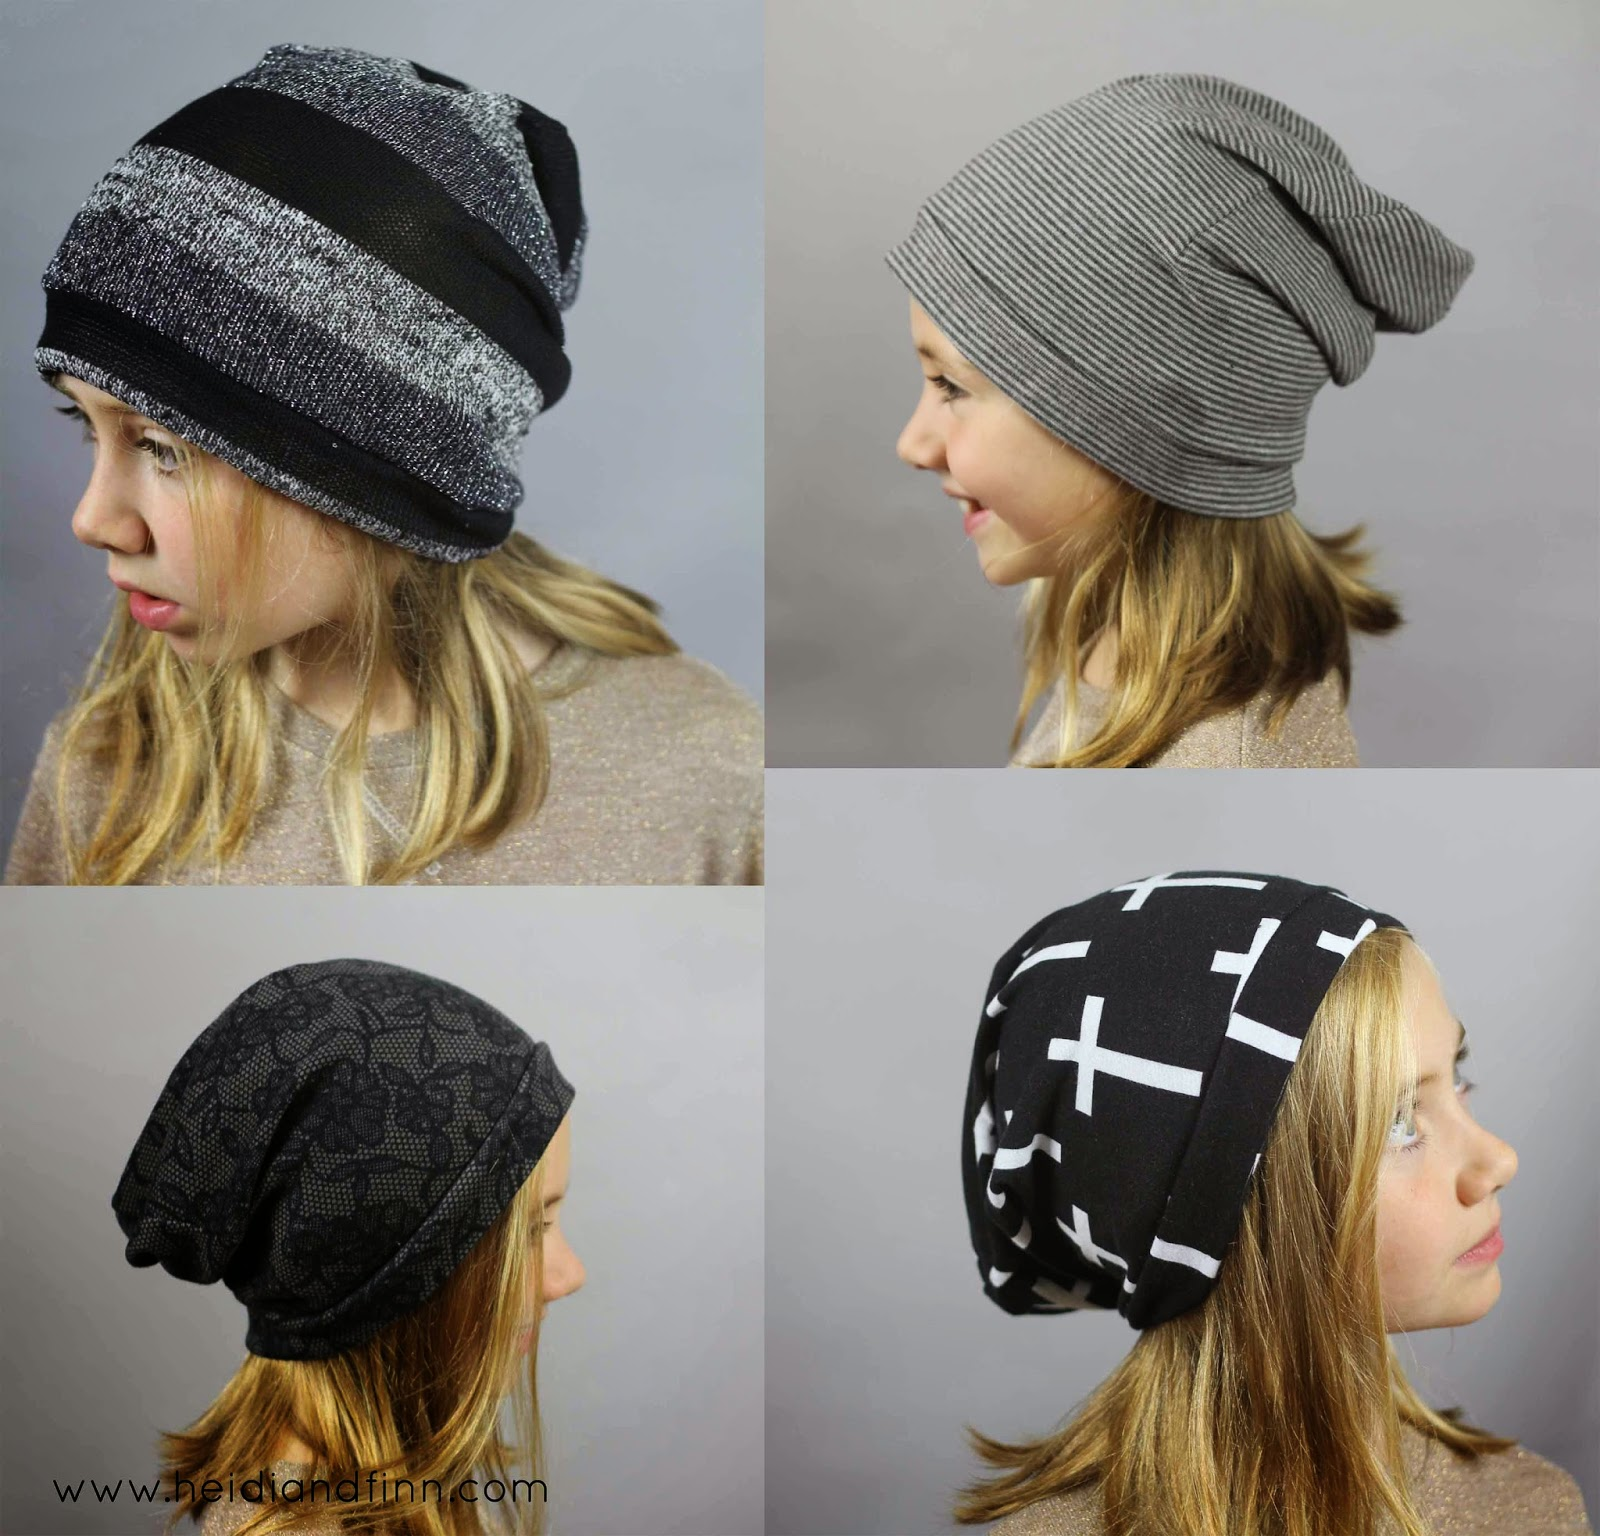 http://www.heidiandfinn.com/2014/10/slouchy-beanie-hat-free-pattern-for.html